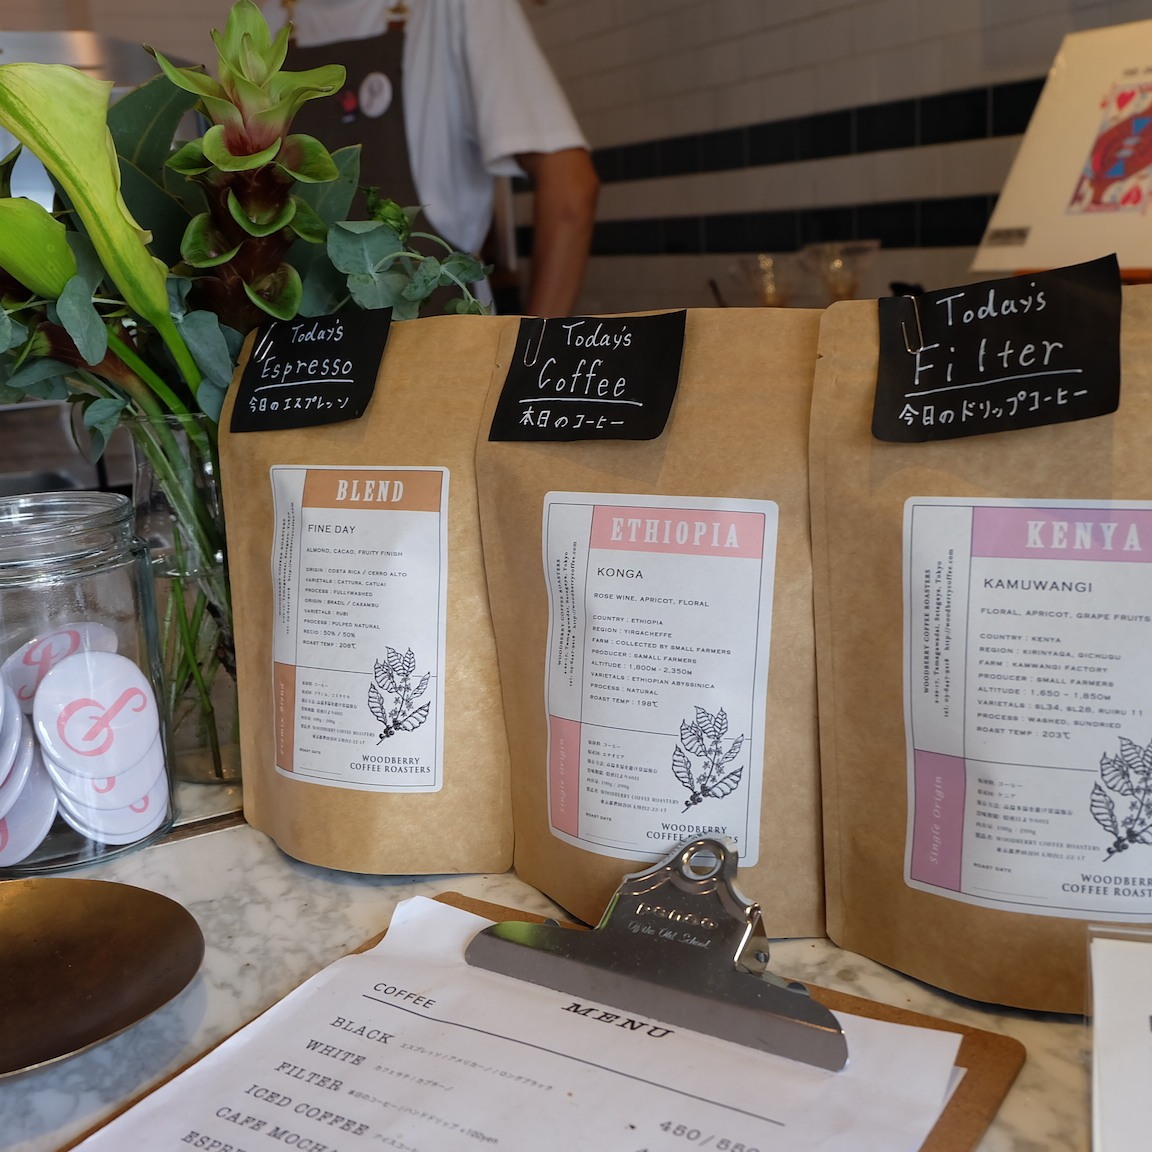 Coffee Bags at Perch by Woodberry Coffee Roasters Tokyo Japan